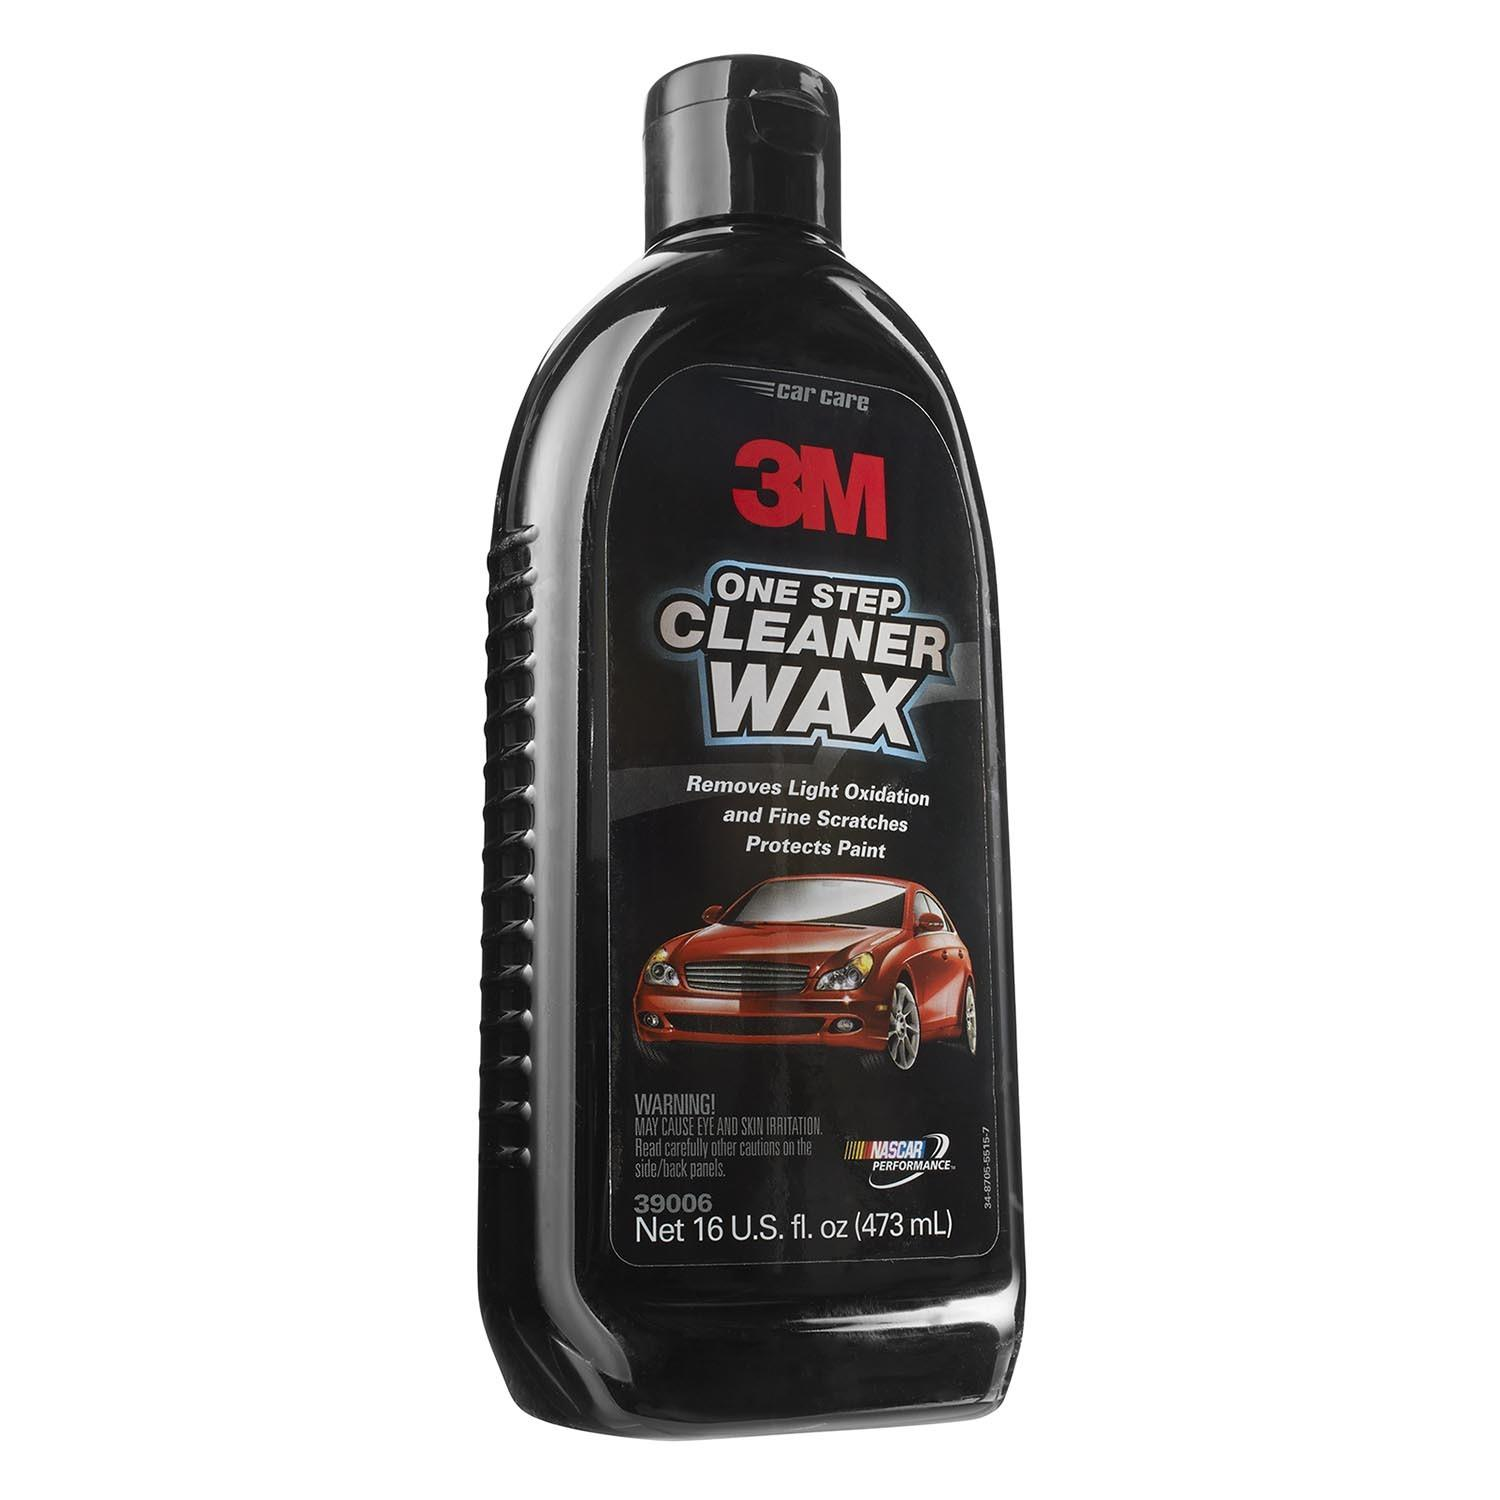 xi phá xước 39006 3m one step cleaner wax